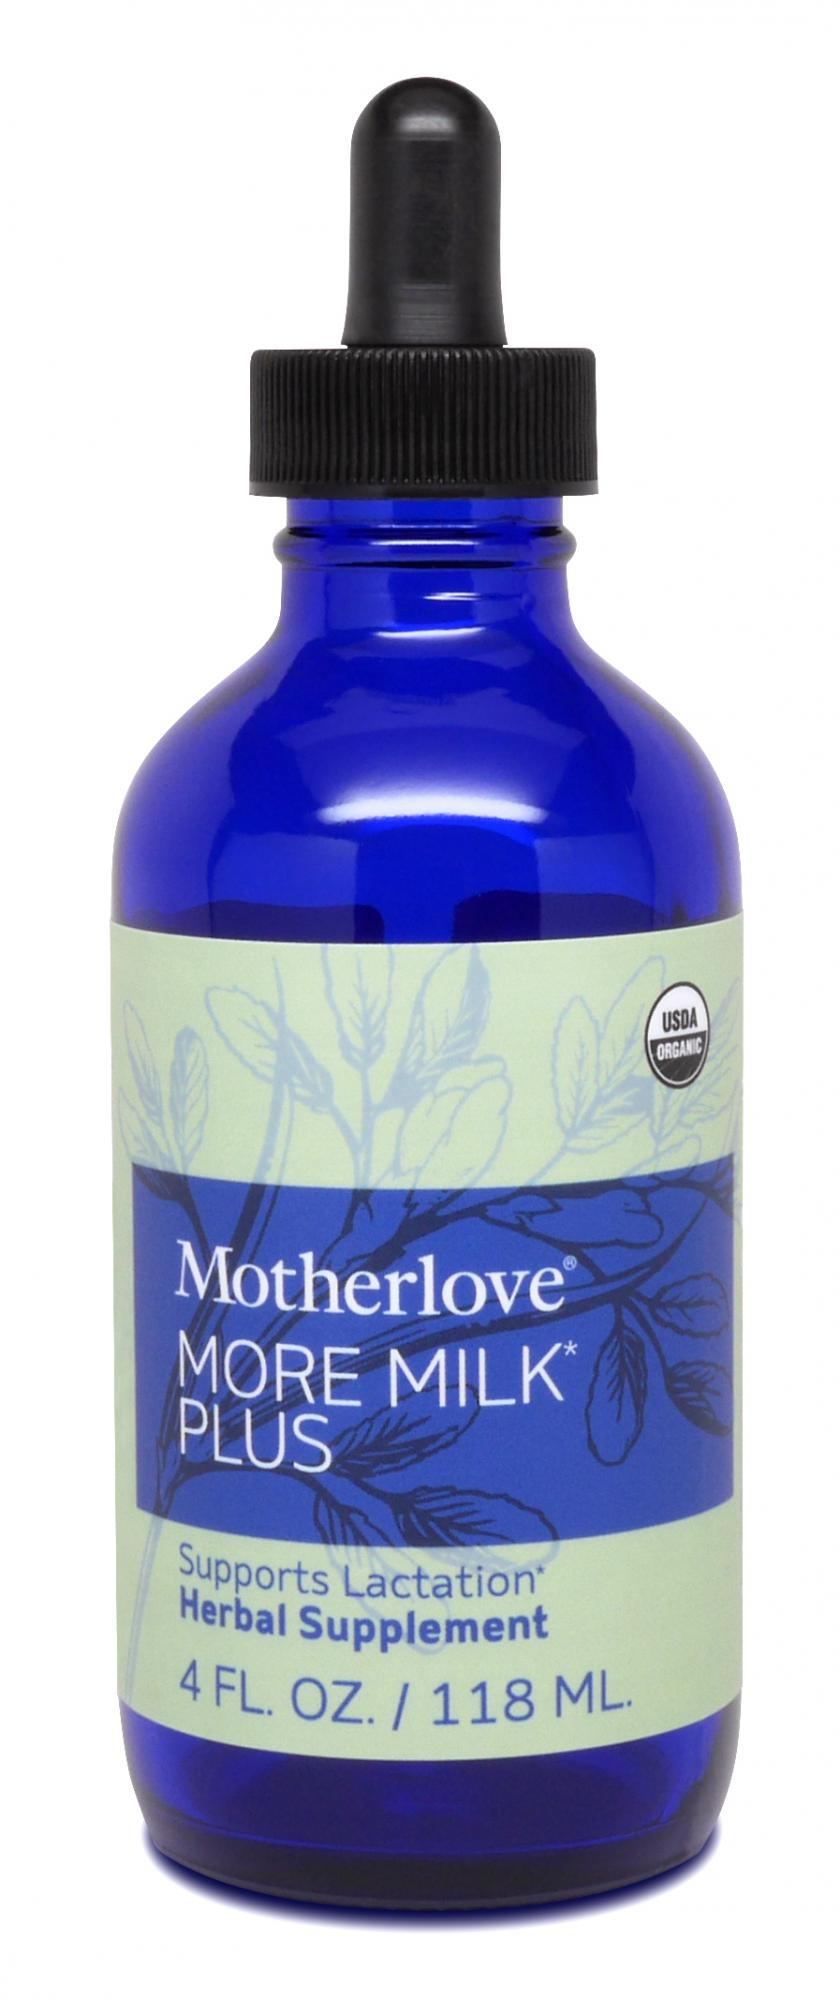 motherlove-more-milk-plus-4.jpg